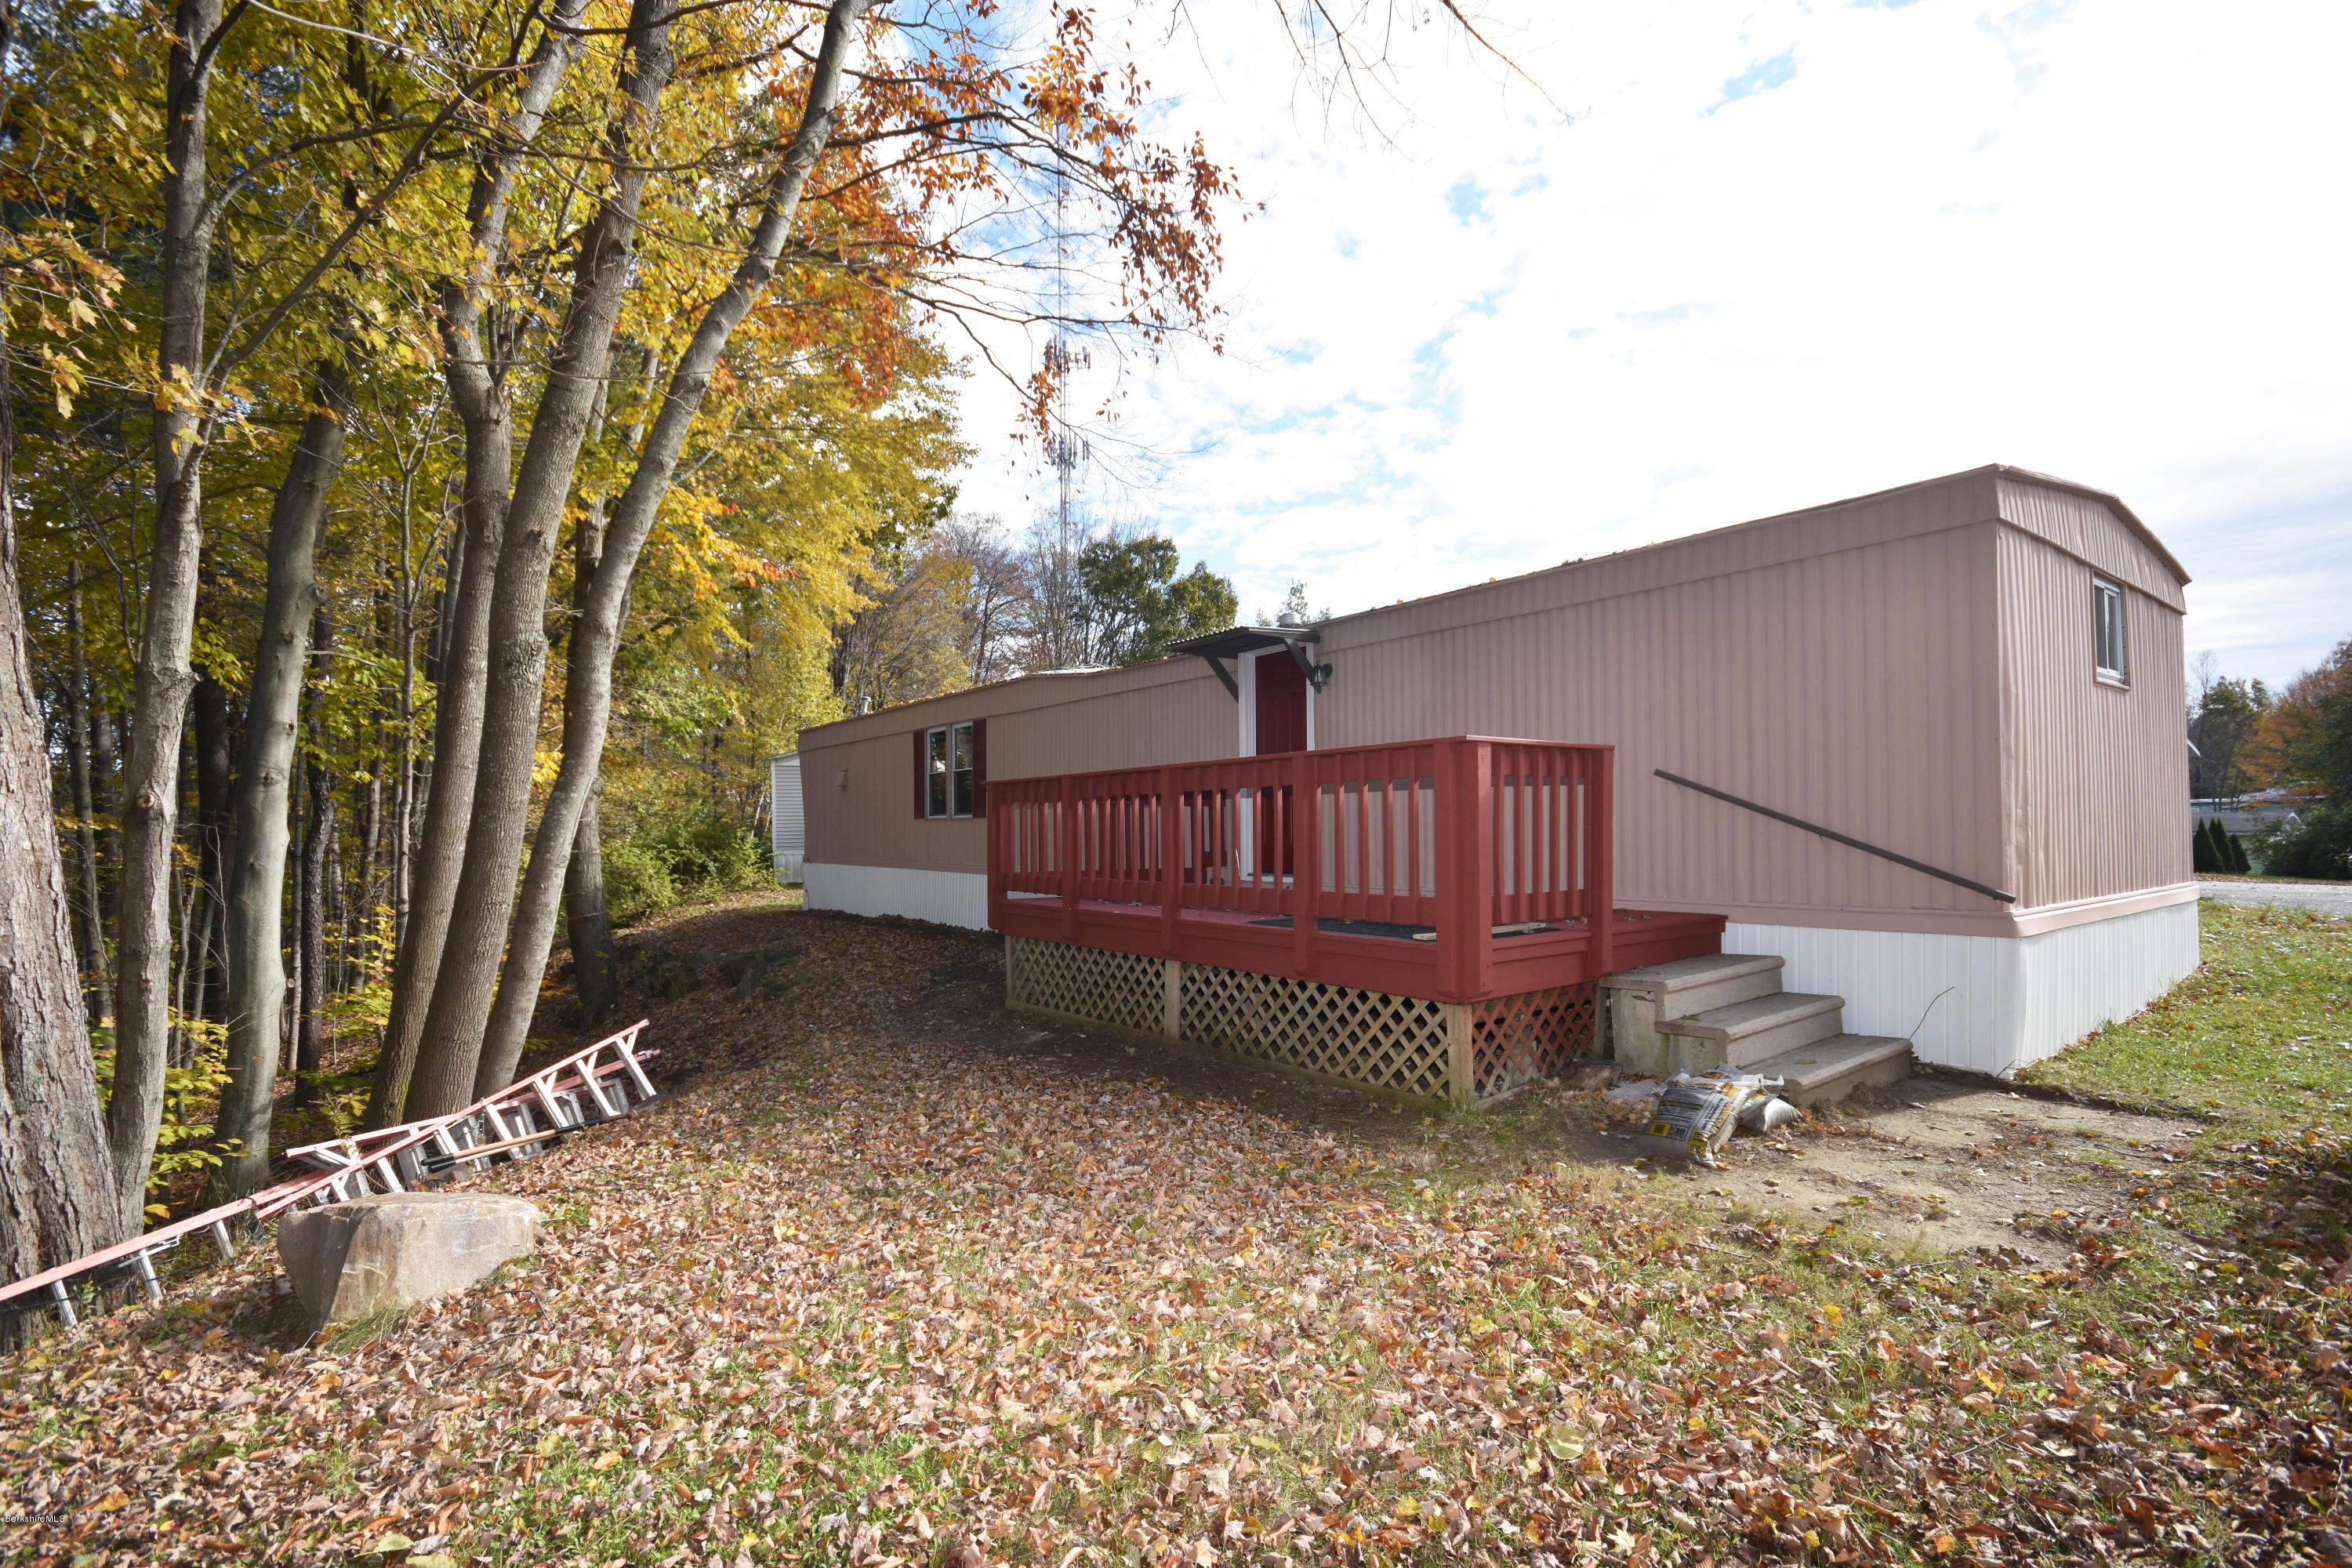 6 Ash Ln, Pittsfield, MA 01201 (MLS# 225294) - Berkshire ... Natural Gas Mobile Home on home sewer, home real estate, home propane gas, home gas furnace, home depot gas generators,